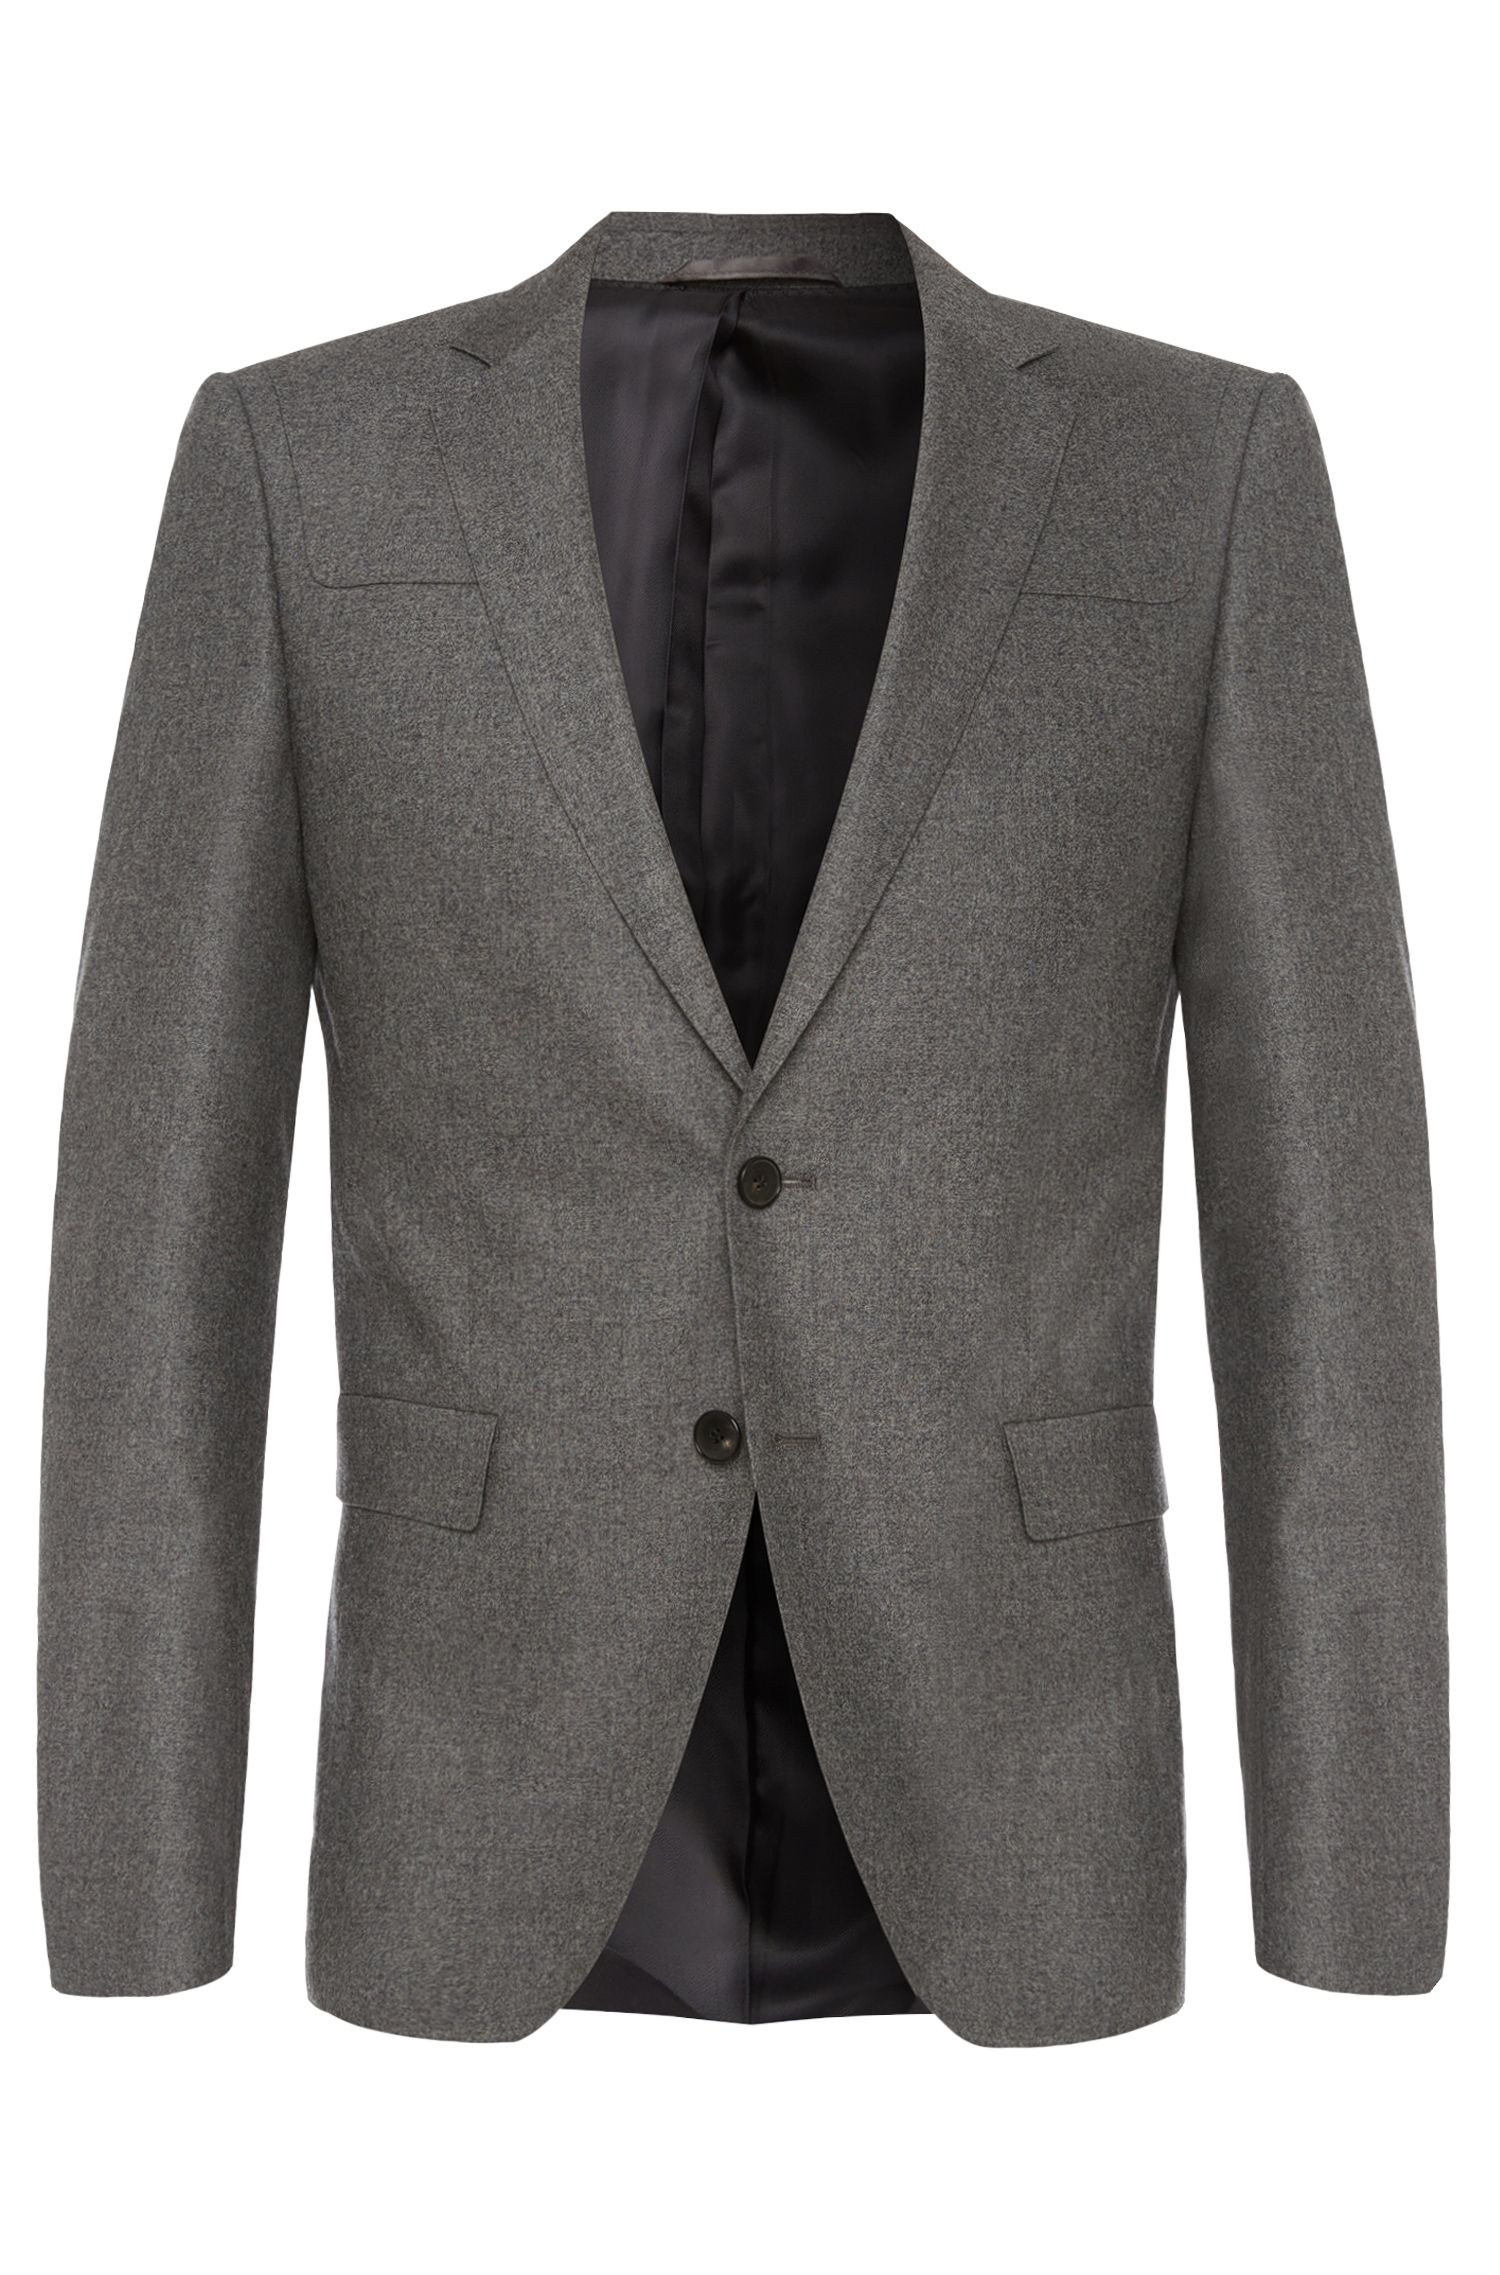 'Randal' | Extra Slim Fit, Stretch Virgin Wool Cashmere Sport Coat